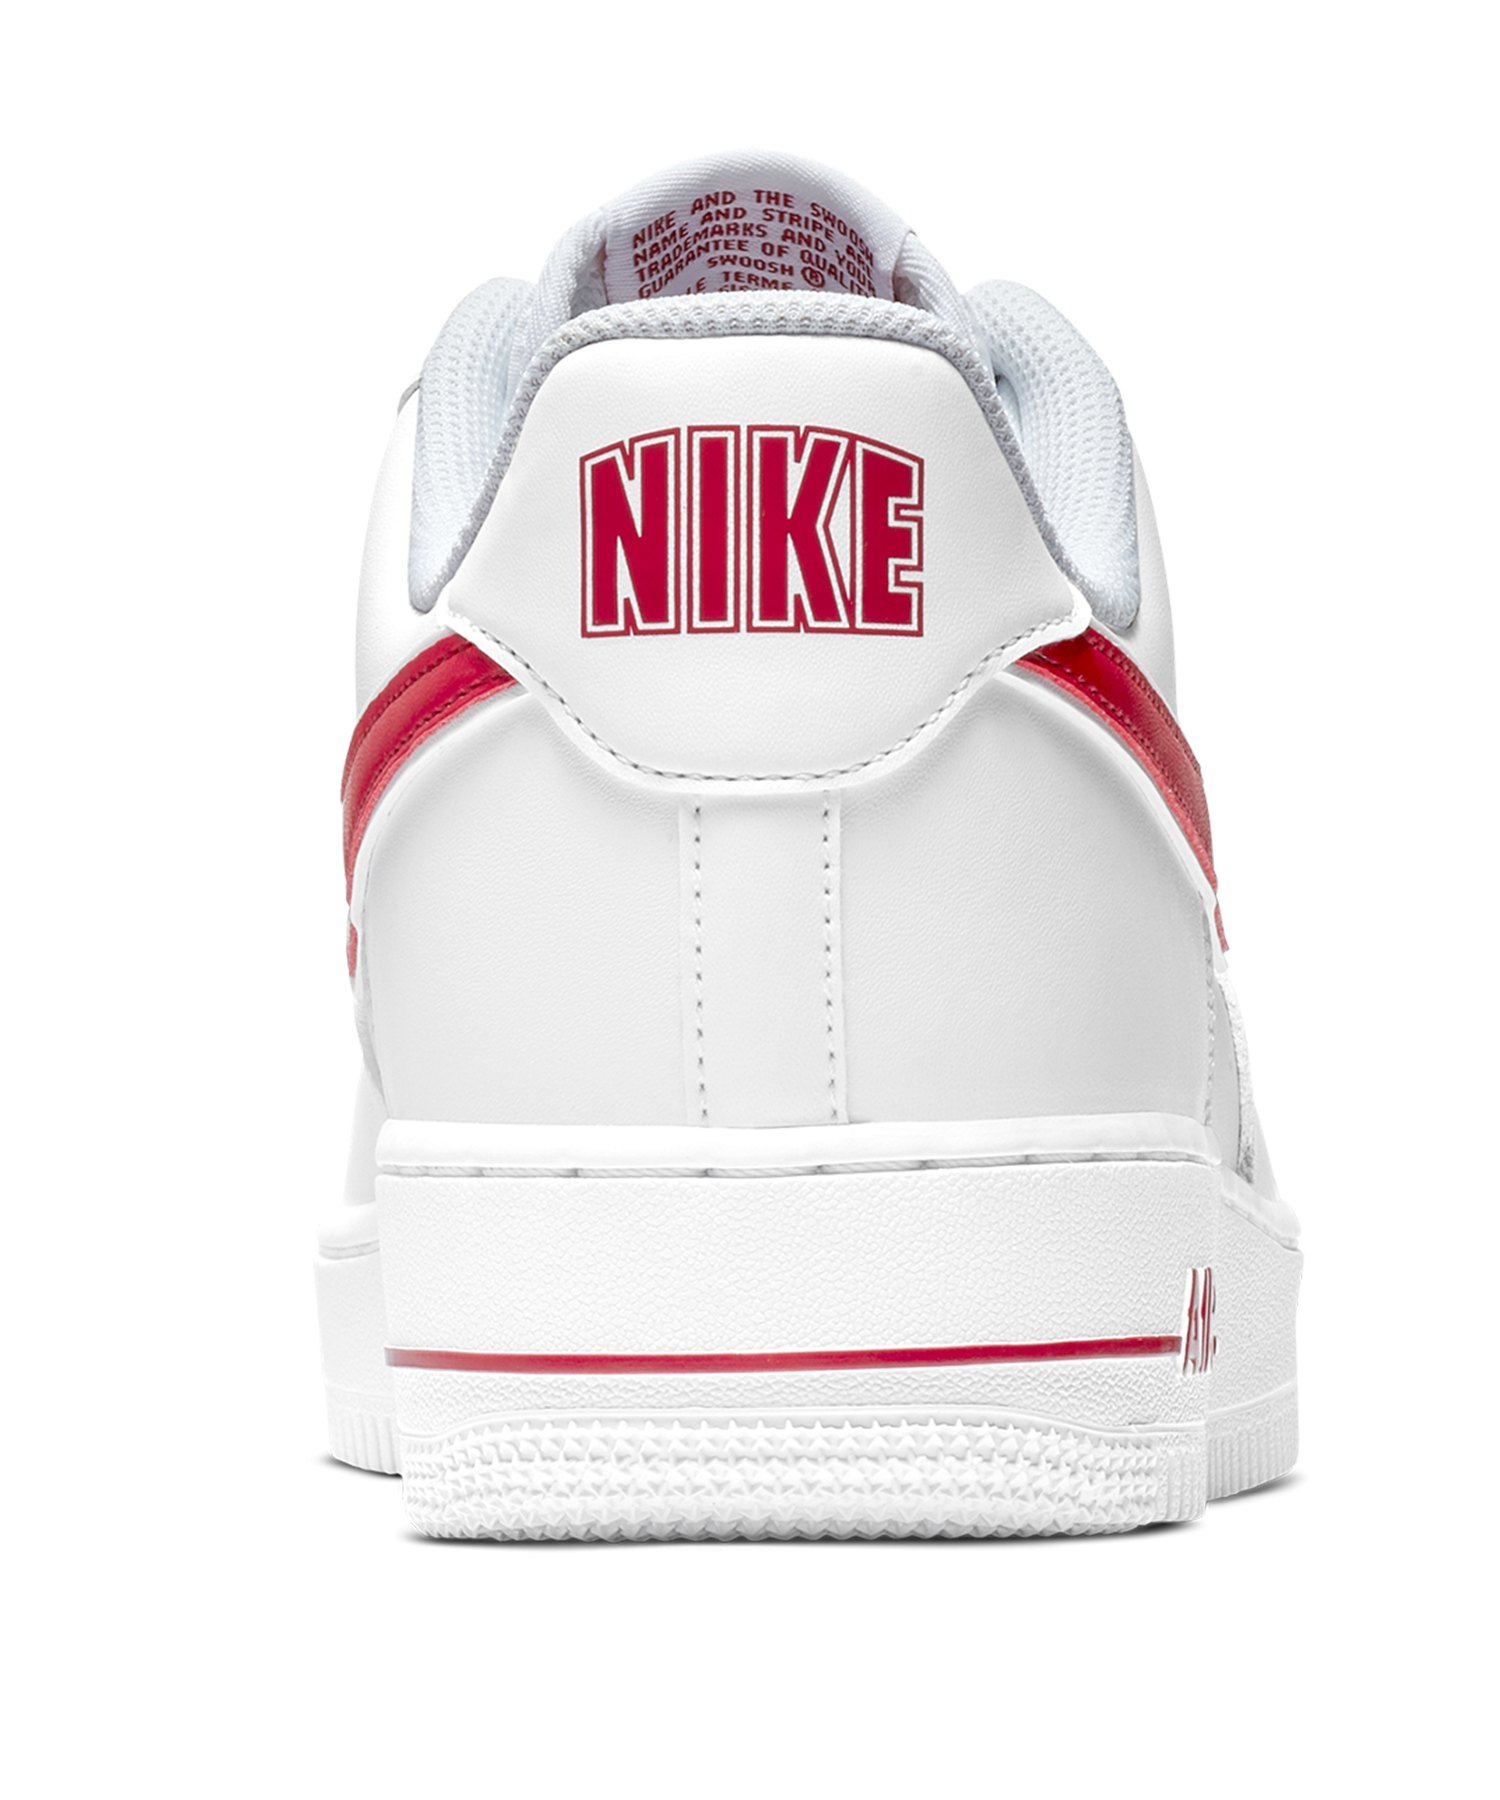 competitive price 4adb2 7eb84 ... Nike Air Force 1 07 Sneaker Weiss Rot F102 - weiss ...